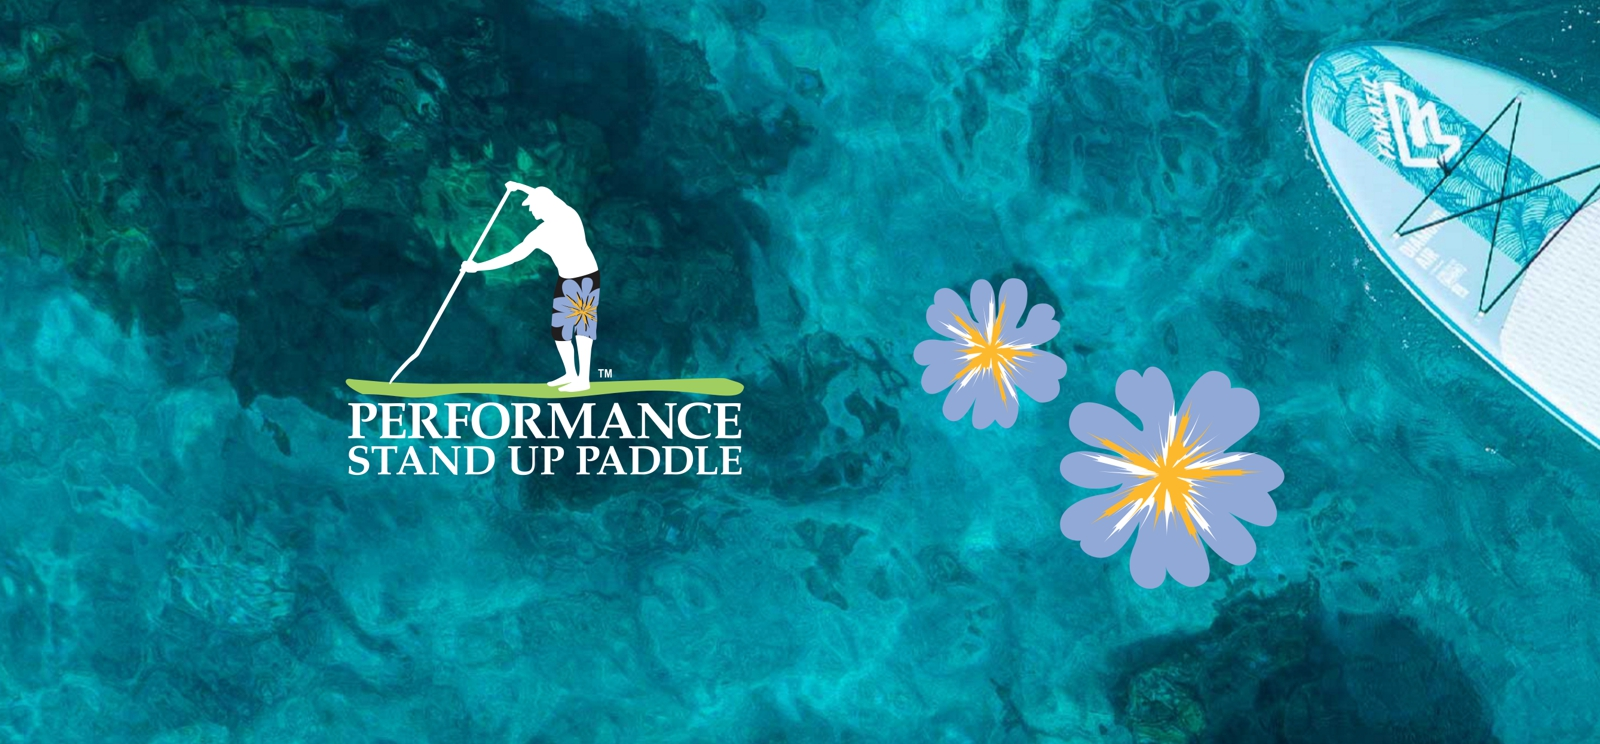 A view from above of a partial SUP board in turquoise water with the Performance Stand Up Paddle logo